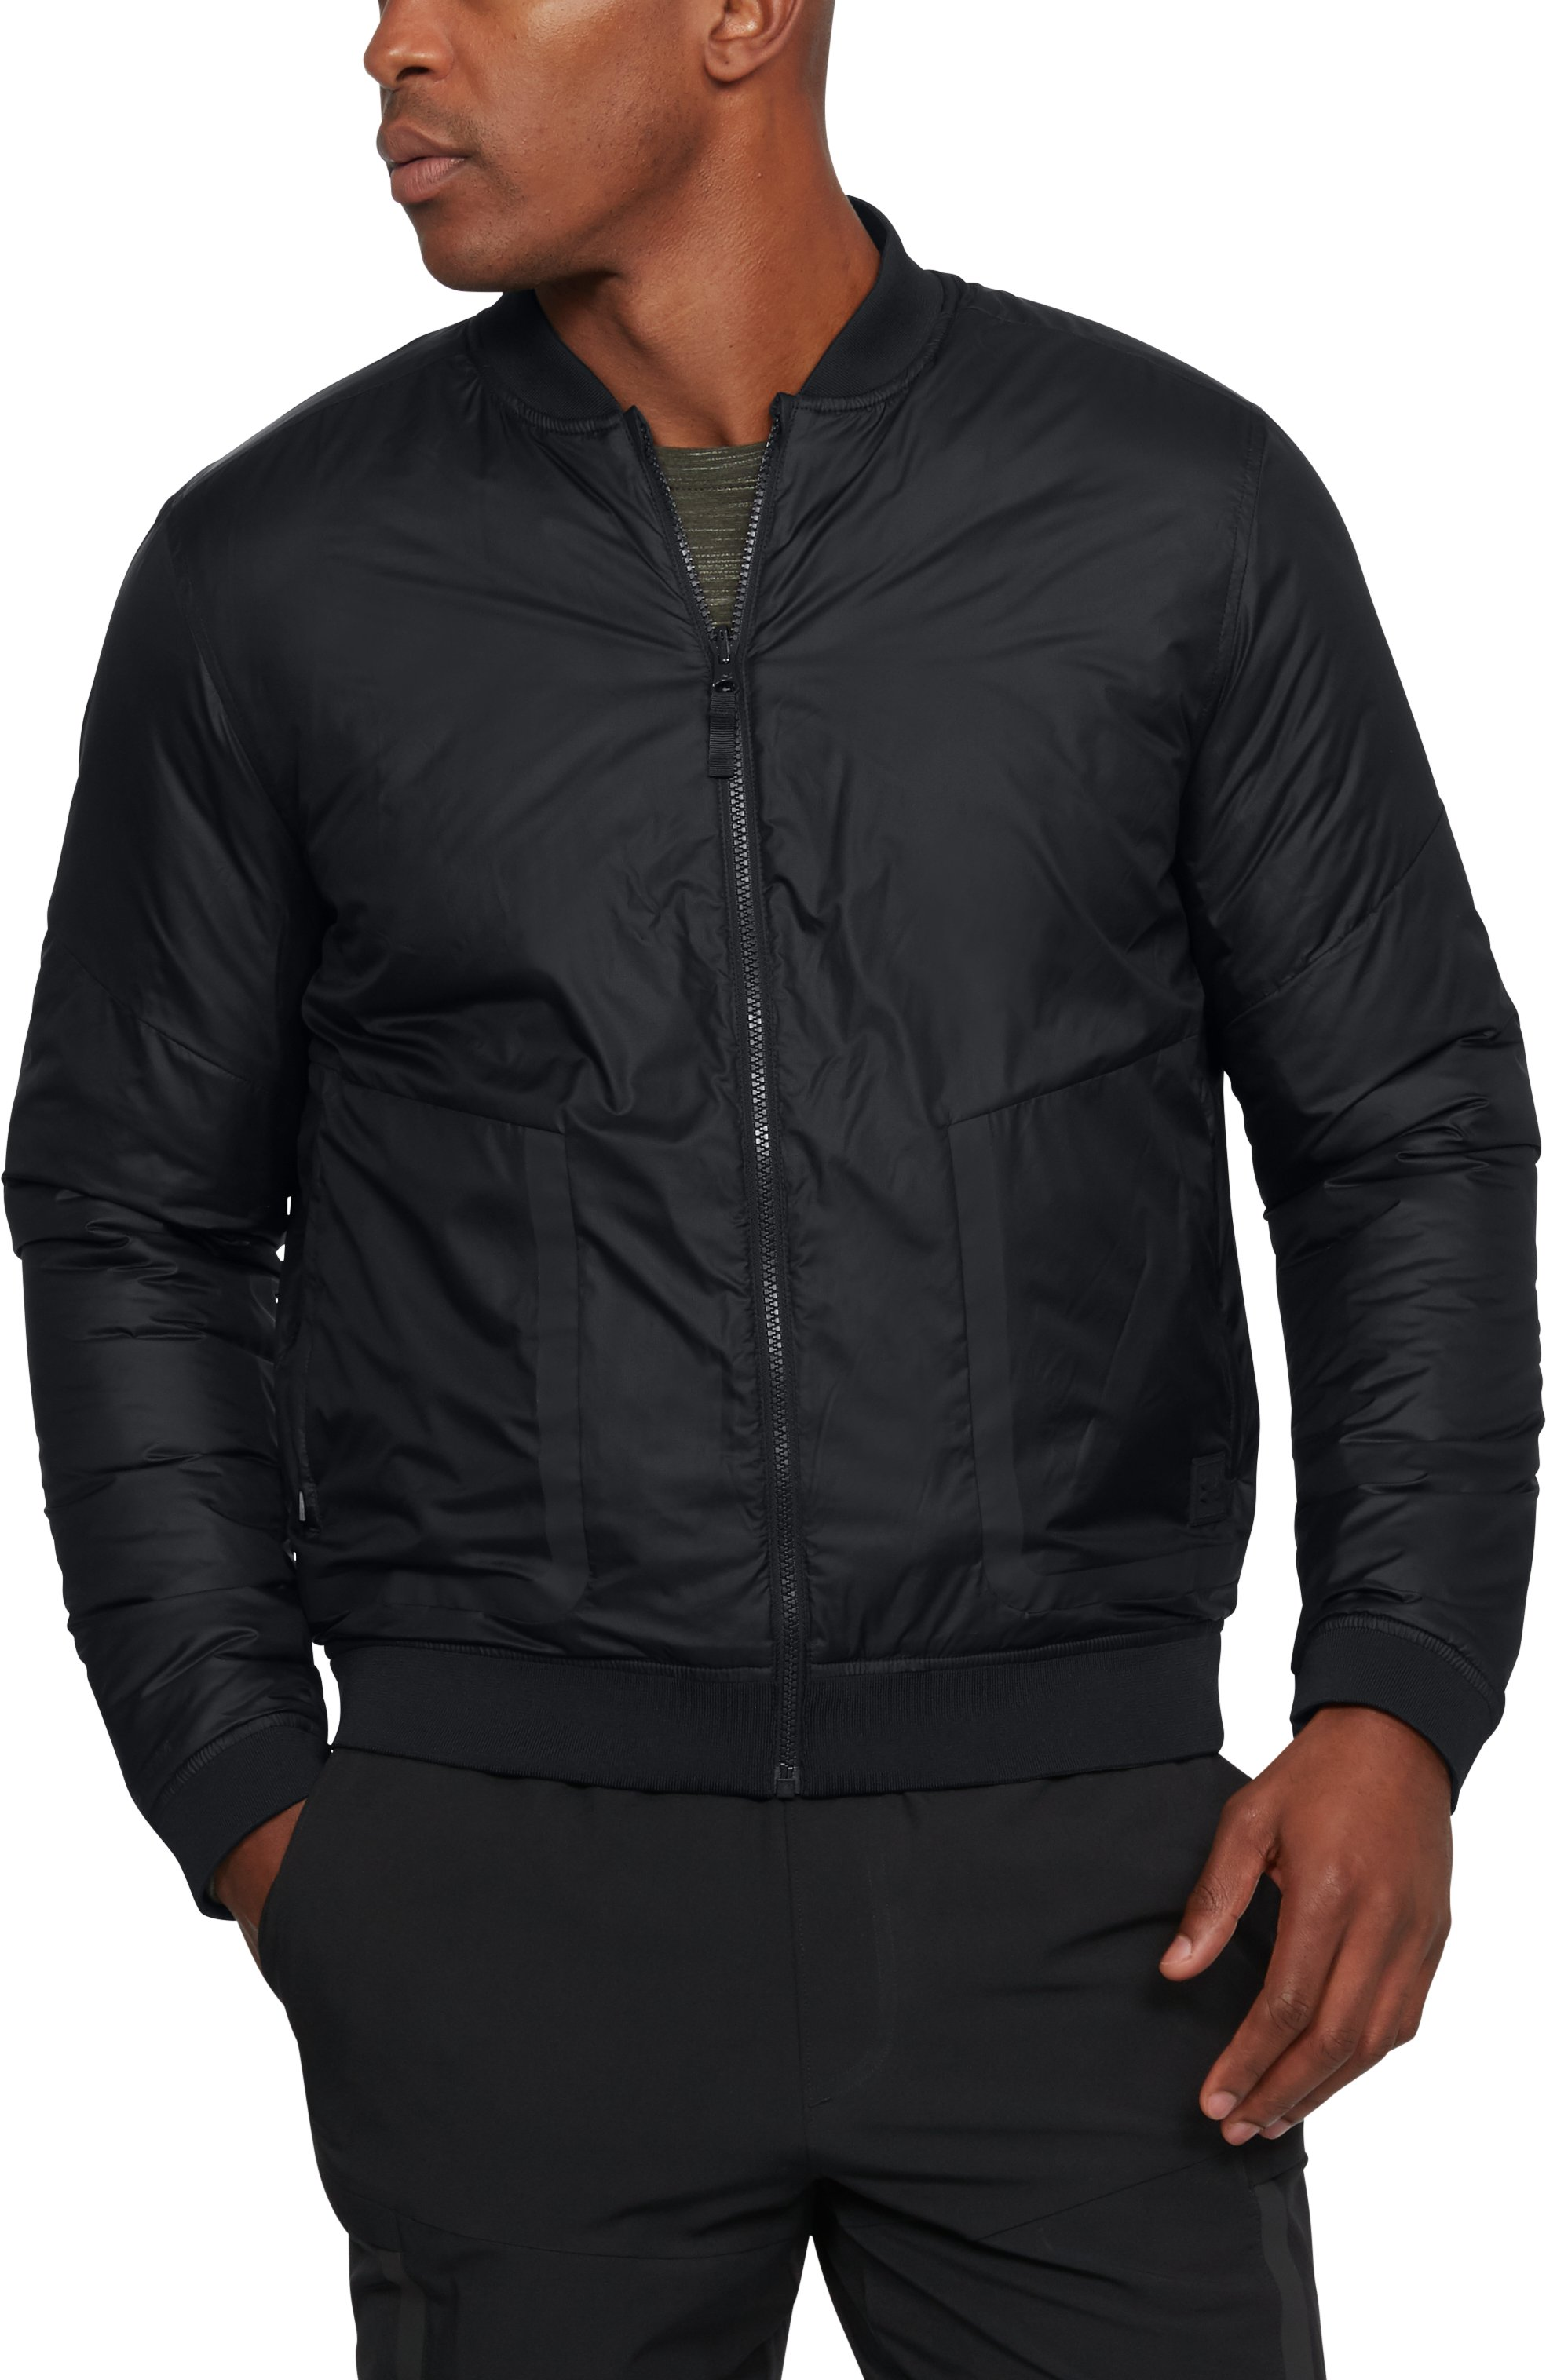 black bomber jackets Men's UA Sportstyle ColdGear® Reactor Bomber Jacket The jacket is very easy and light.